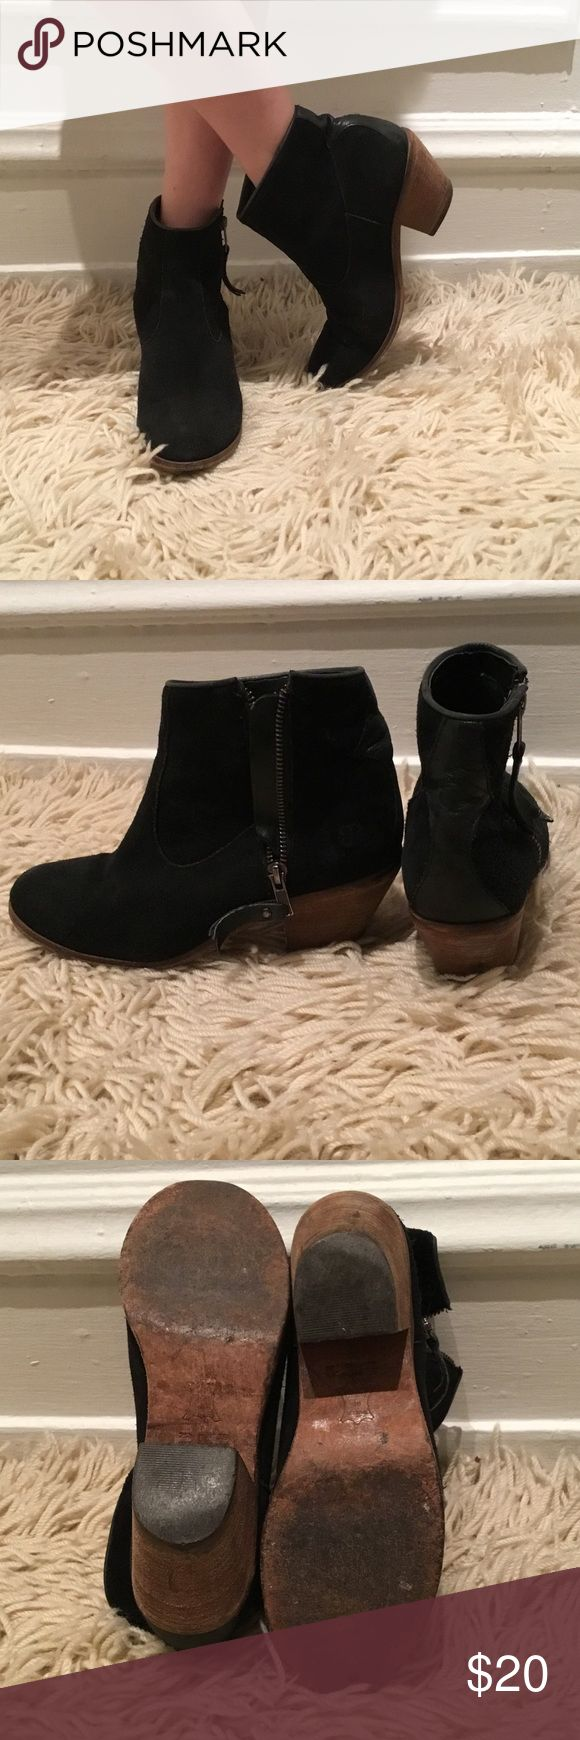 Gabriella Rocha, black suede heeled ankle boots. Gabriella Rocha, black suede and leather ankle boots, zip up, wooden heel. Leather section on up back of ankle ( zoom into 2 pic for closer look) Gabriella Rocha Shoes Ankle Boots & Booties